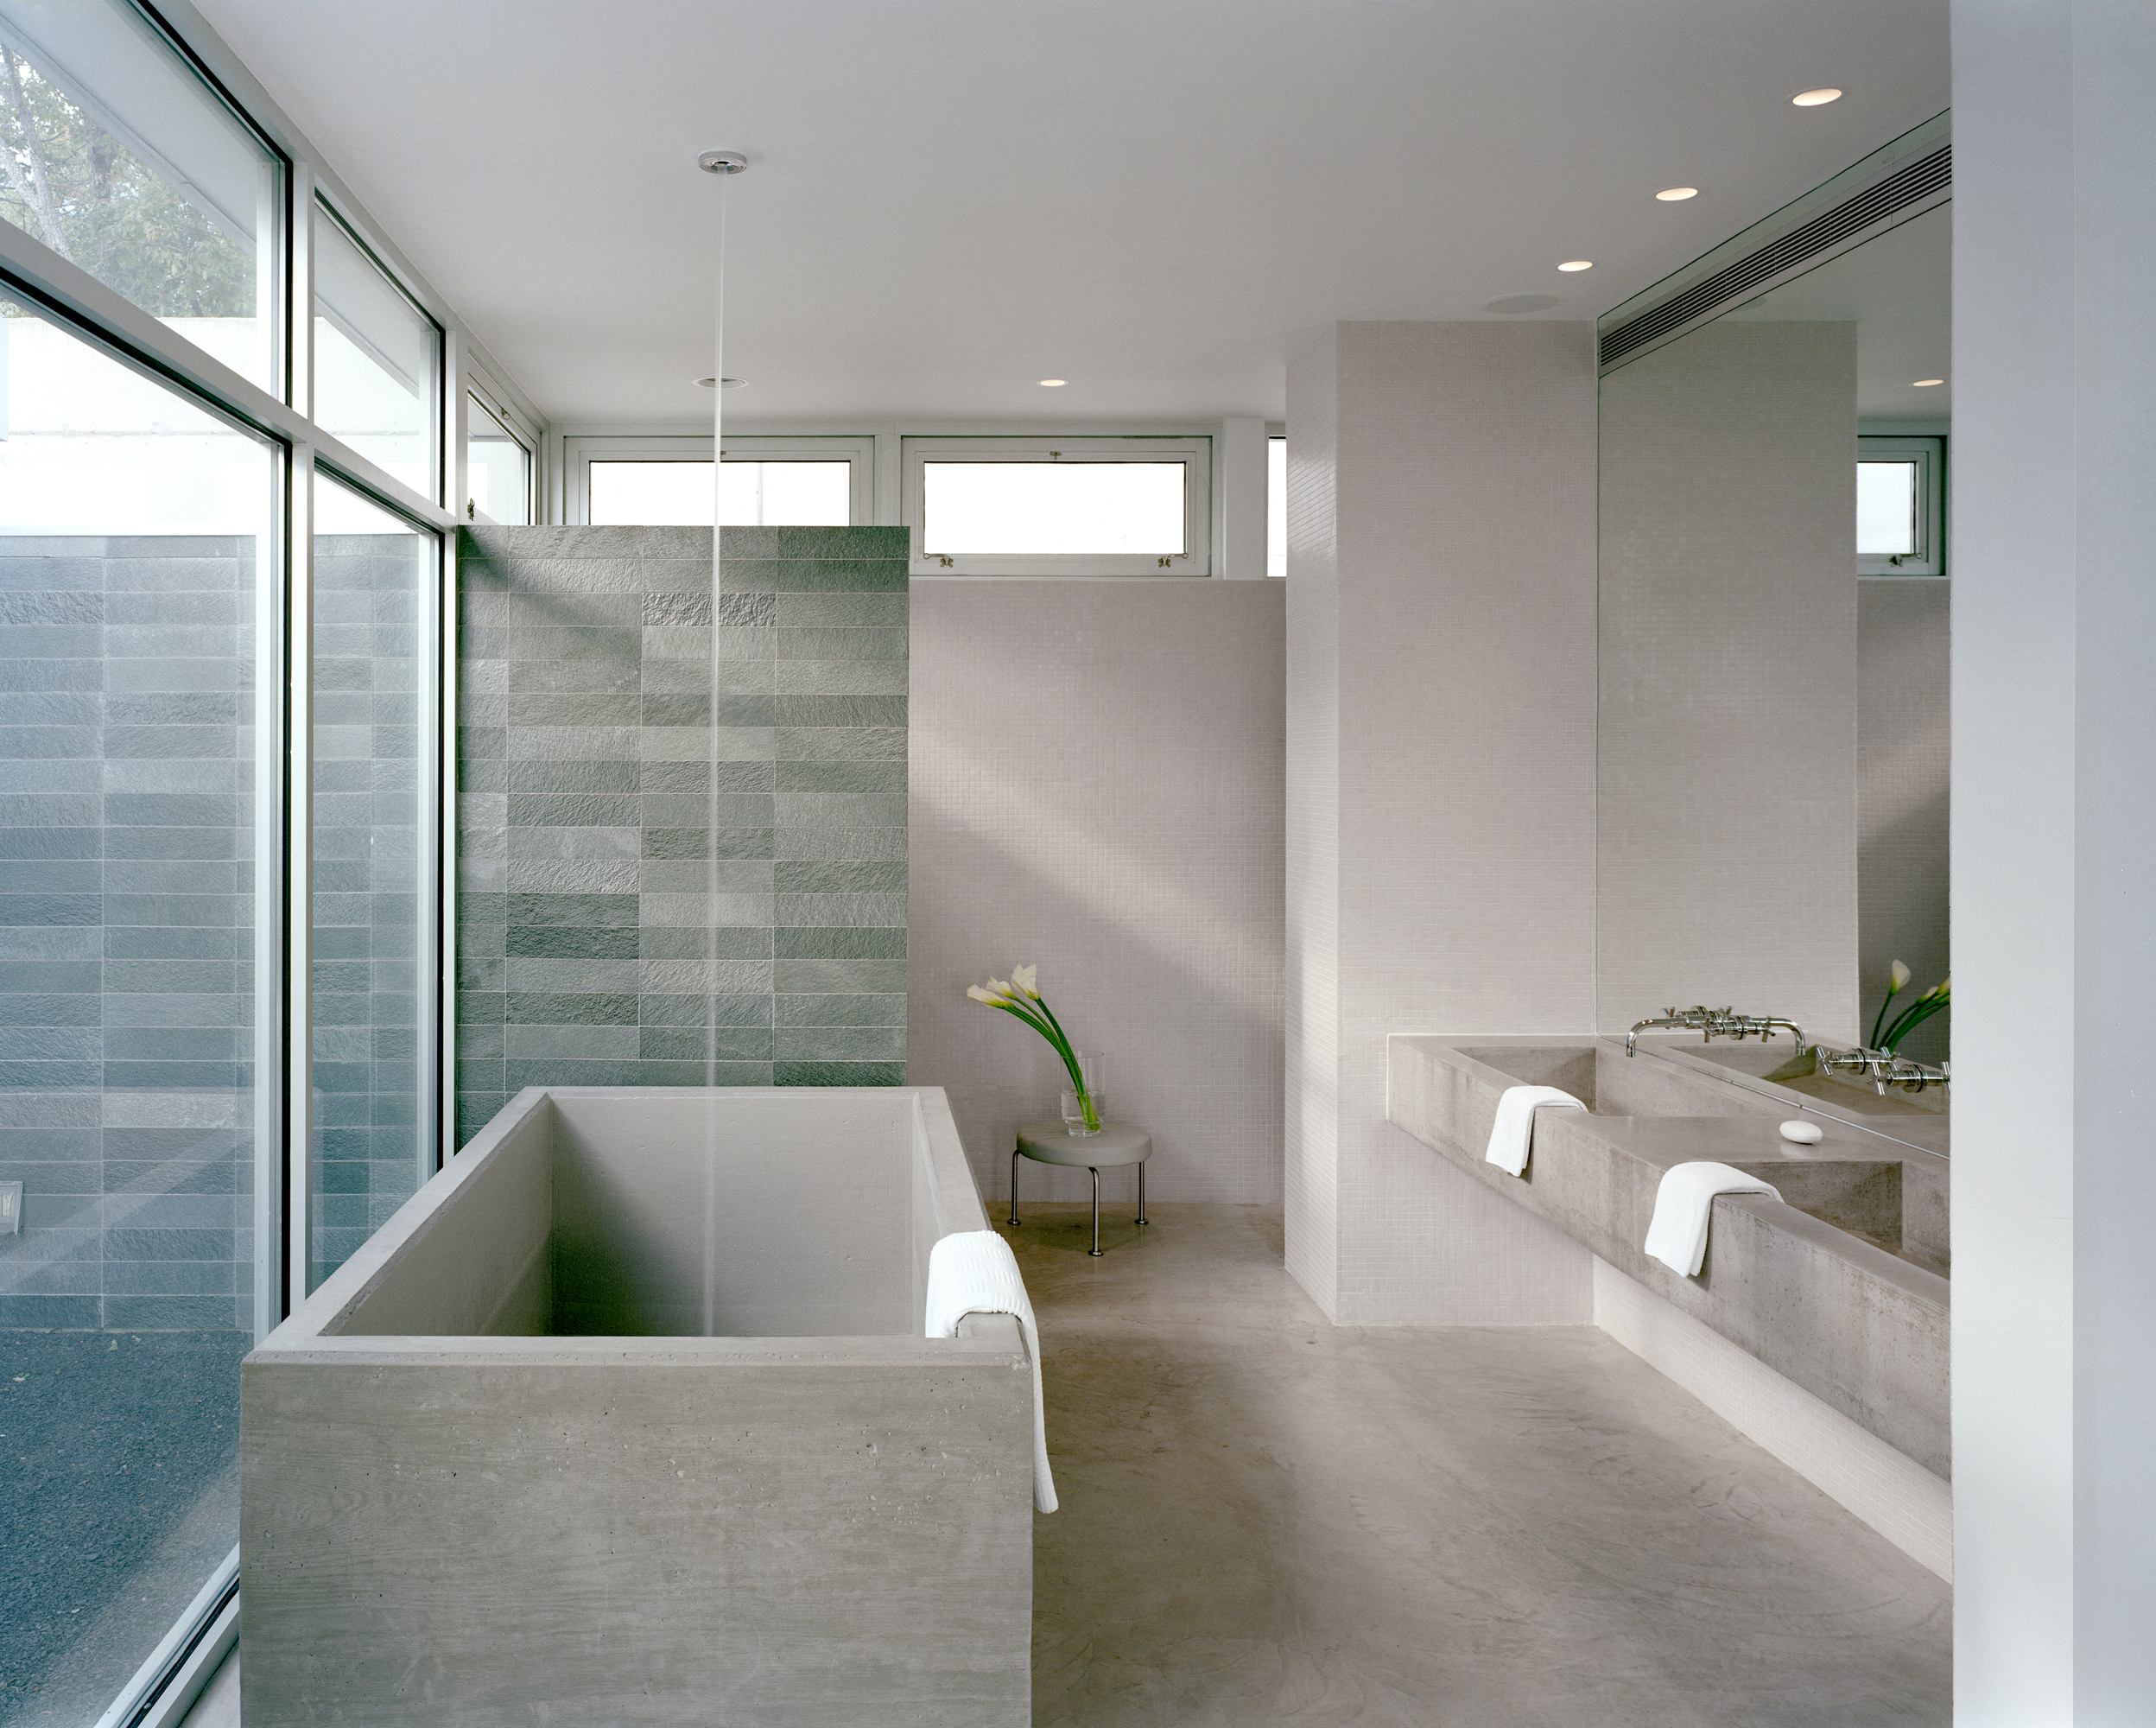 18 extraordinary modern bathroom interior designs you 39 ll - Pictures of modern bathrooms ...